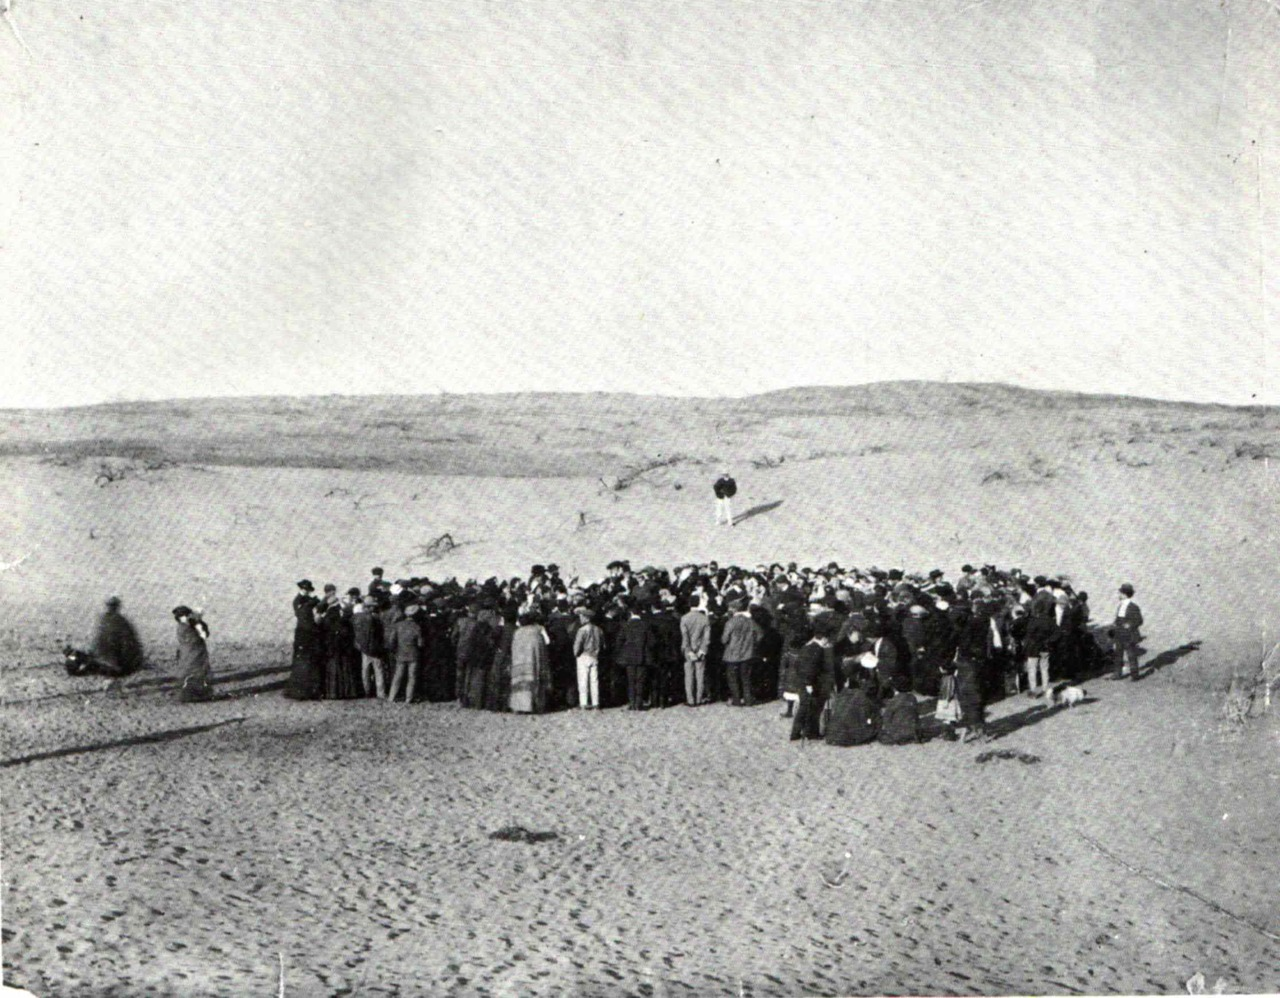 About 100 people participate in a lottery to equally divide a 12-acre plot of sand dunes they've purchased, that would later become the city of Tel Aviv, Israel.